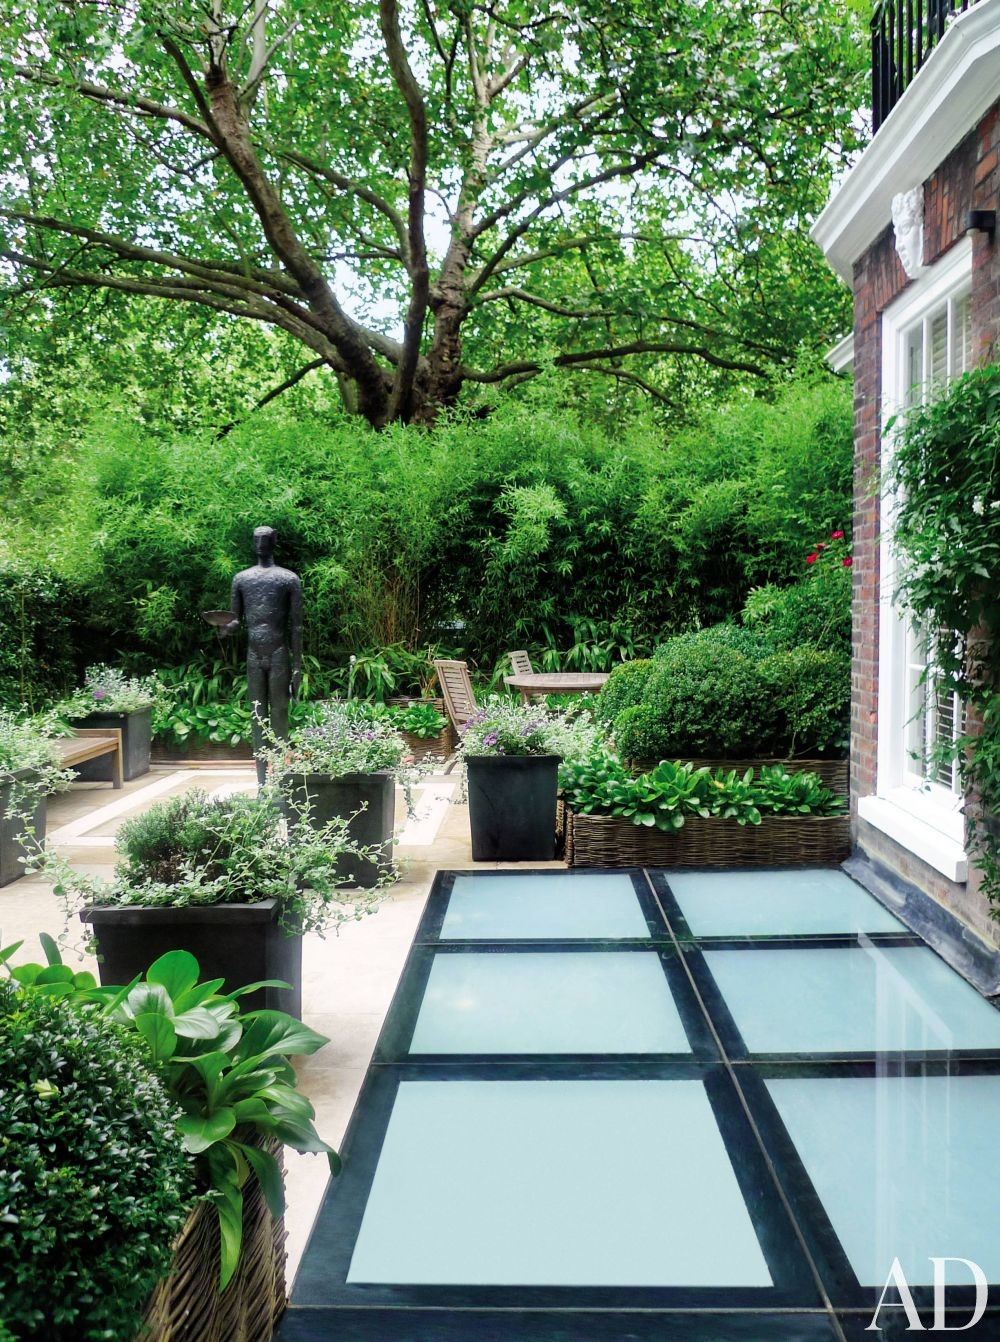 Contemporary Outdoor Space by Shelton, Mindel & Associates and Anthony Close-Smith in London